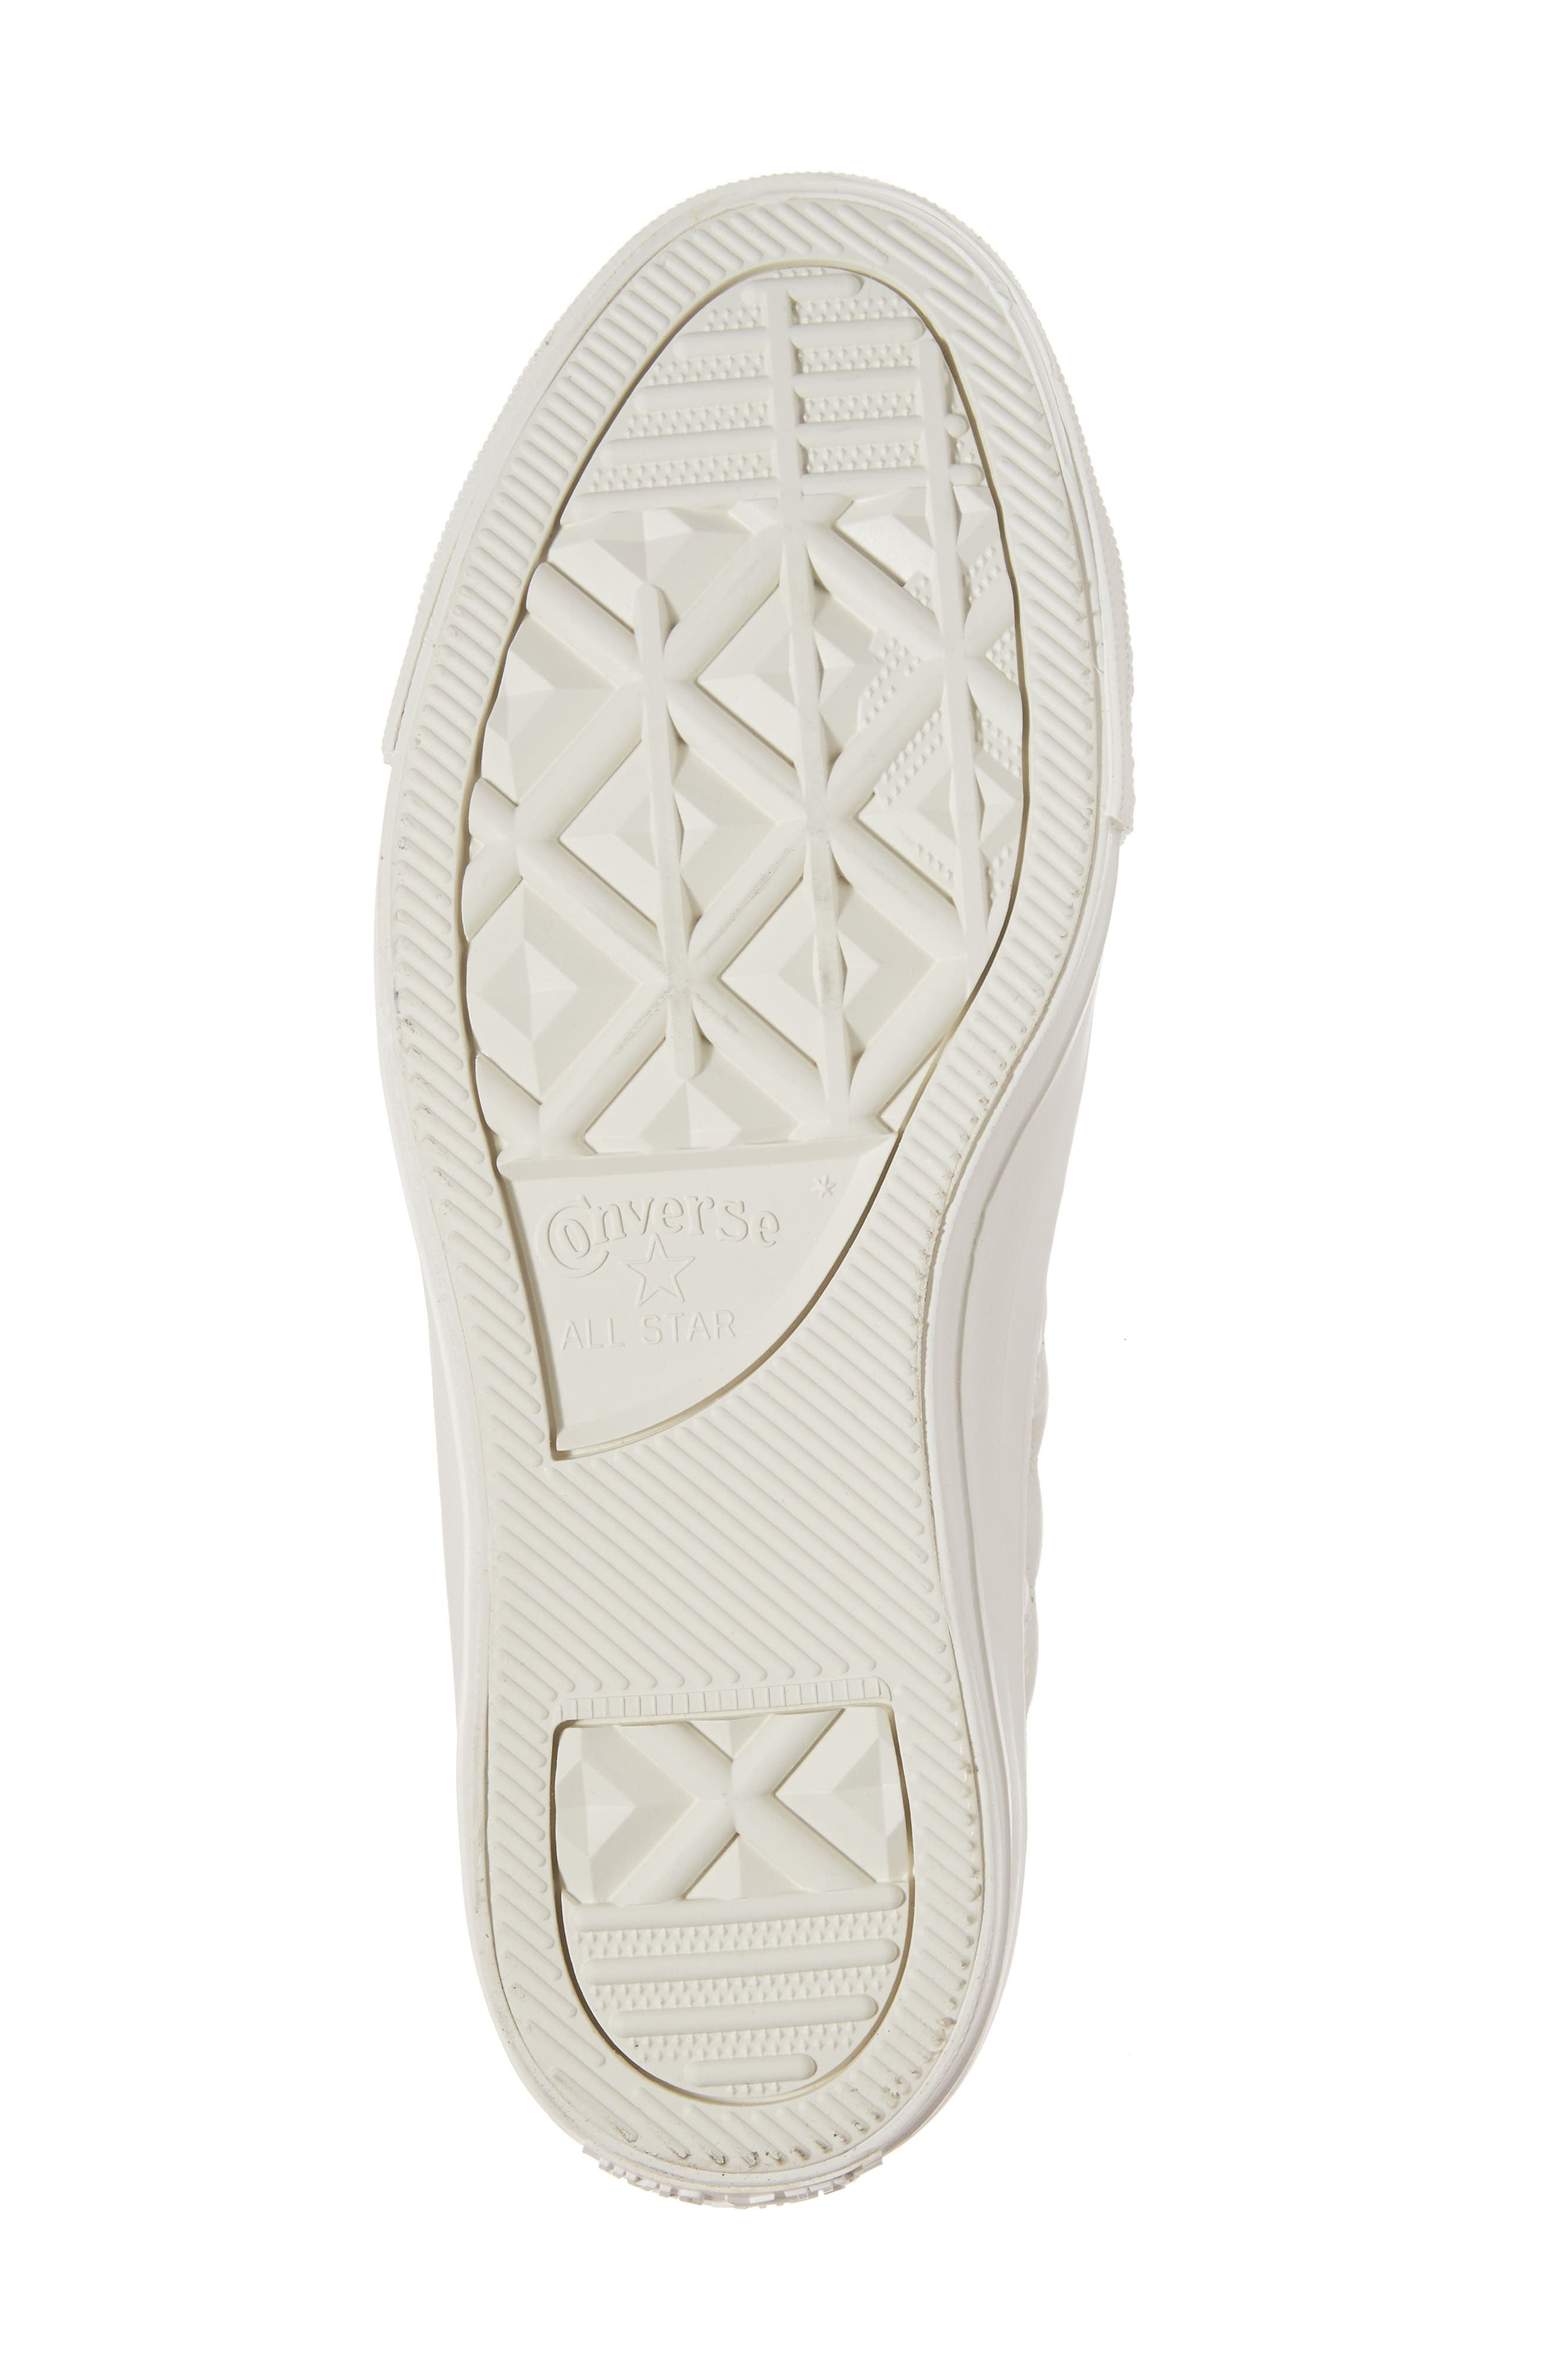 All Star<sup>®</sup> Quilted High Top Sneaker,                             Alternate thumbnail 6, color,                             Egret Leather